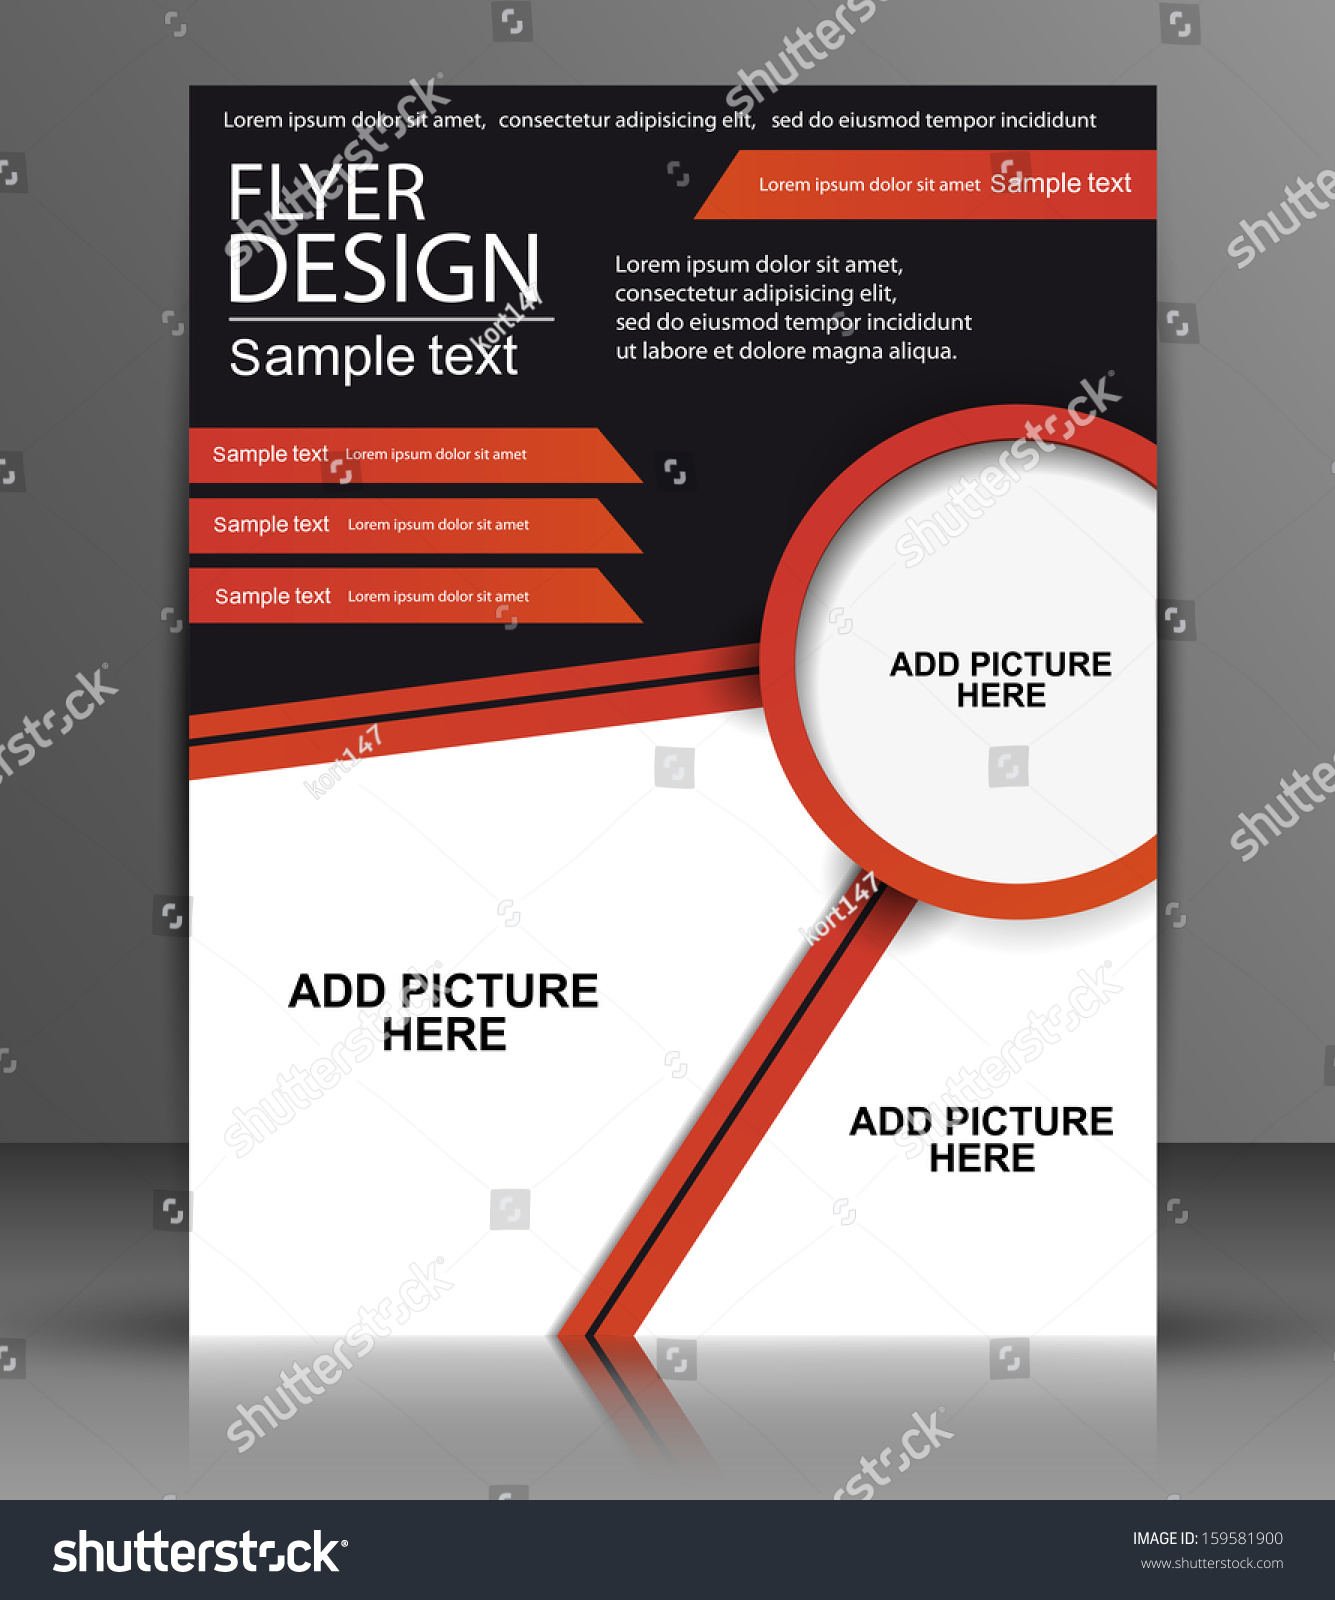 vector flyer design business stock vector 159581900 shutterstock vector flyer design business